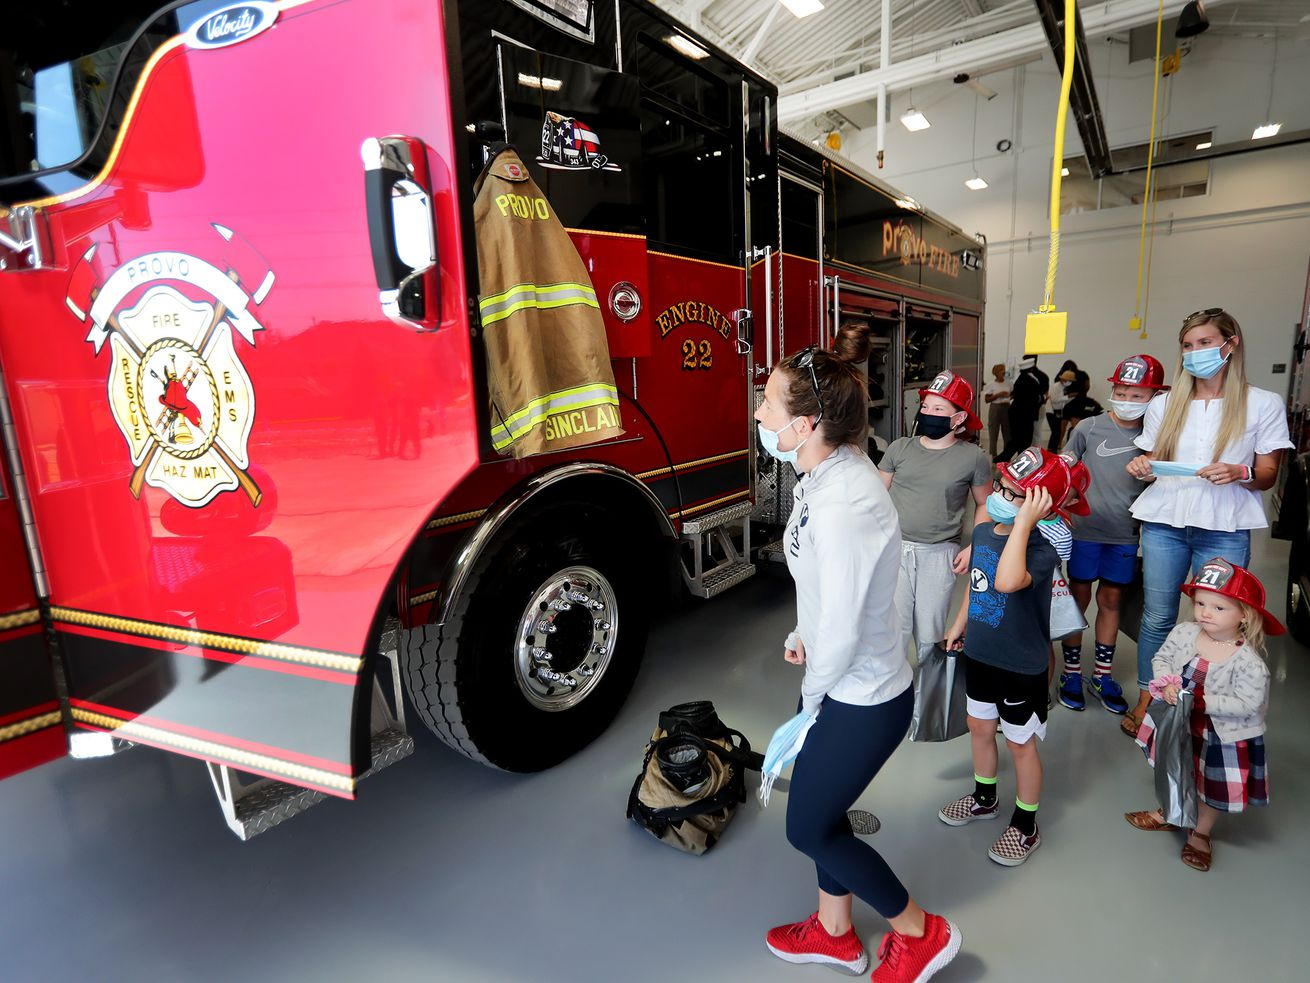 Community members check out a firetruck during the grand opening of Provo Fire Station 22 on Friday, Sept. 11, 2020. Firefighters past and present were honored during the Patriot Day dedication.